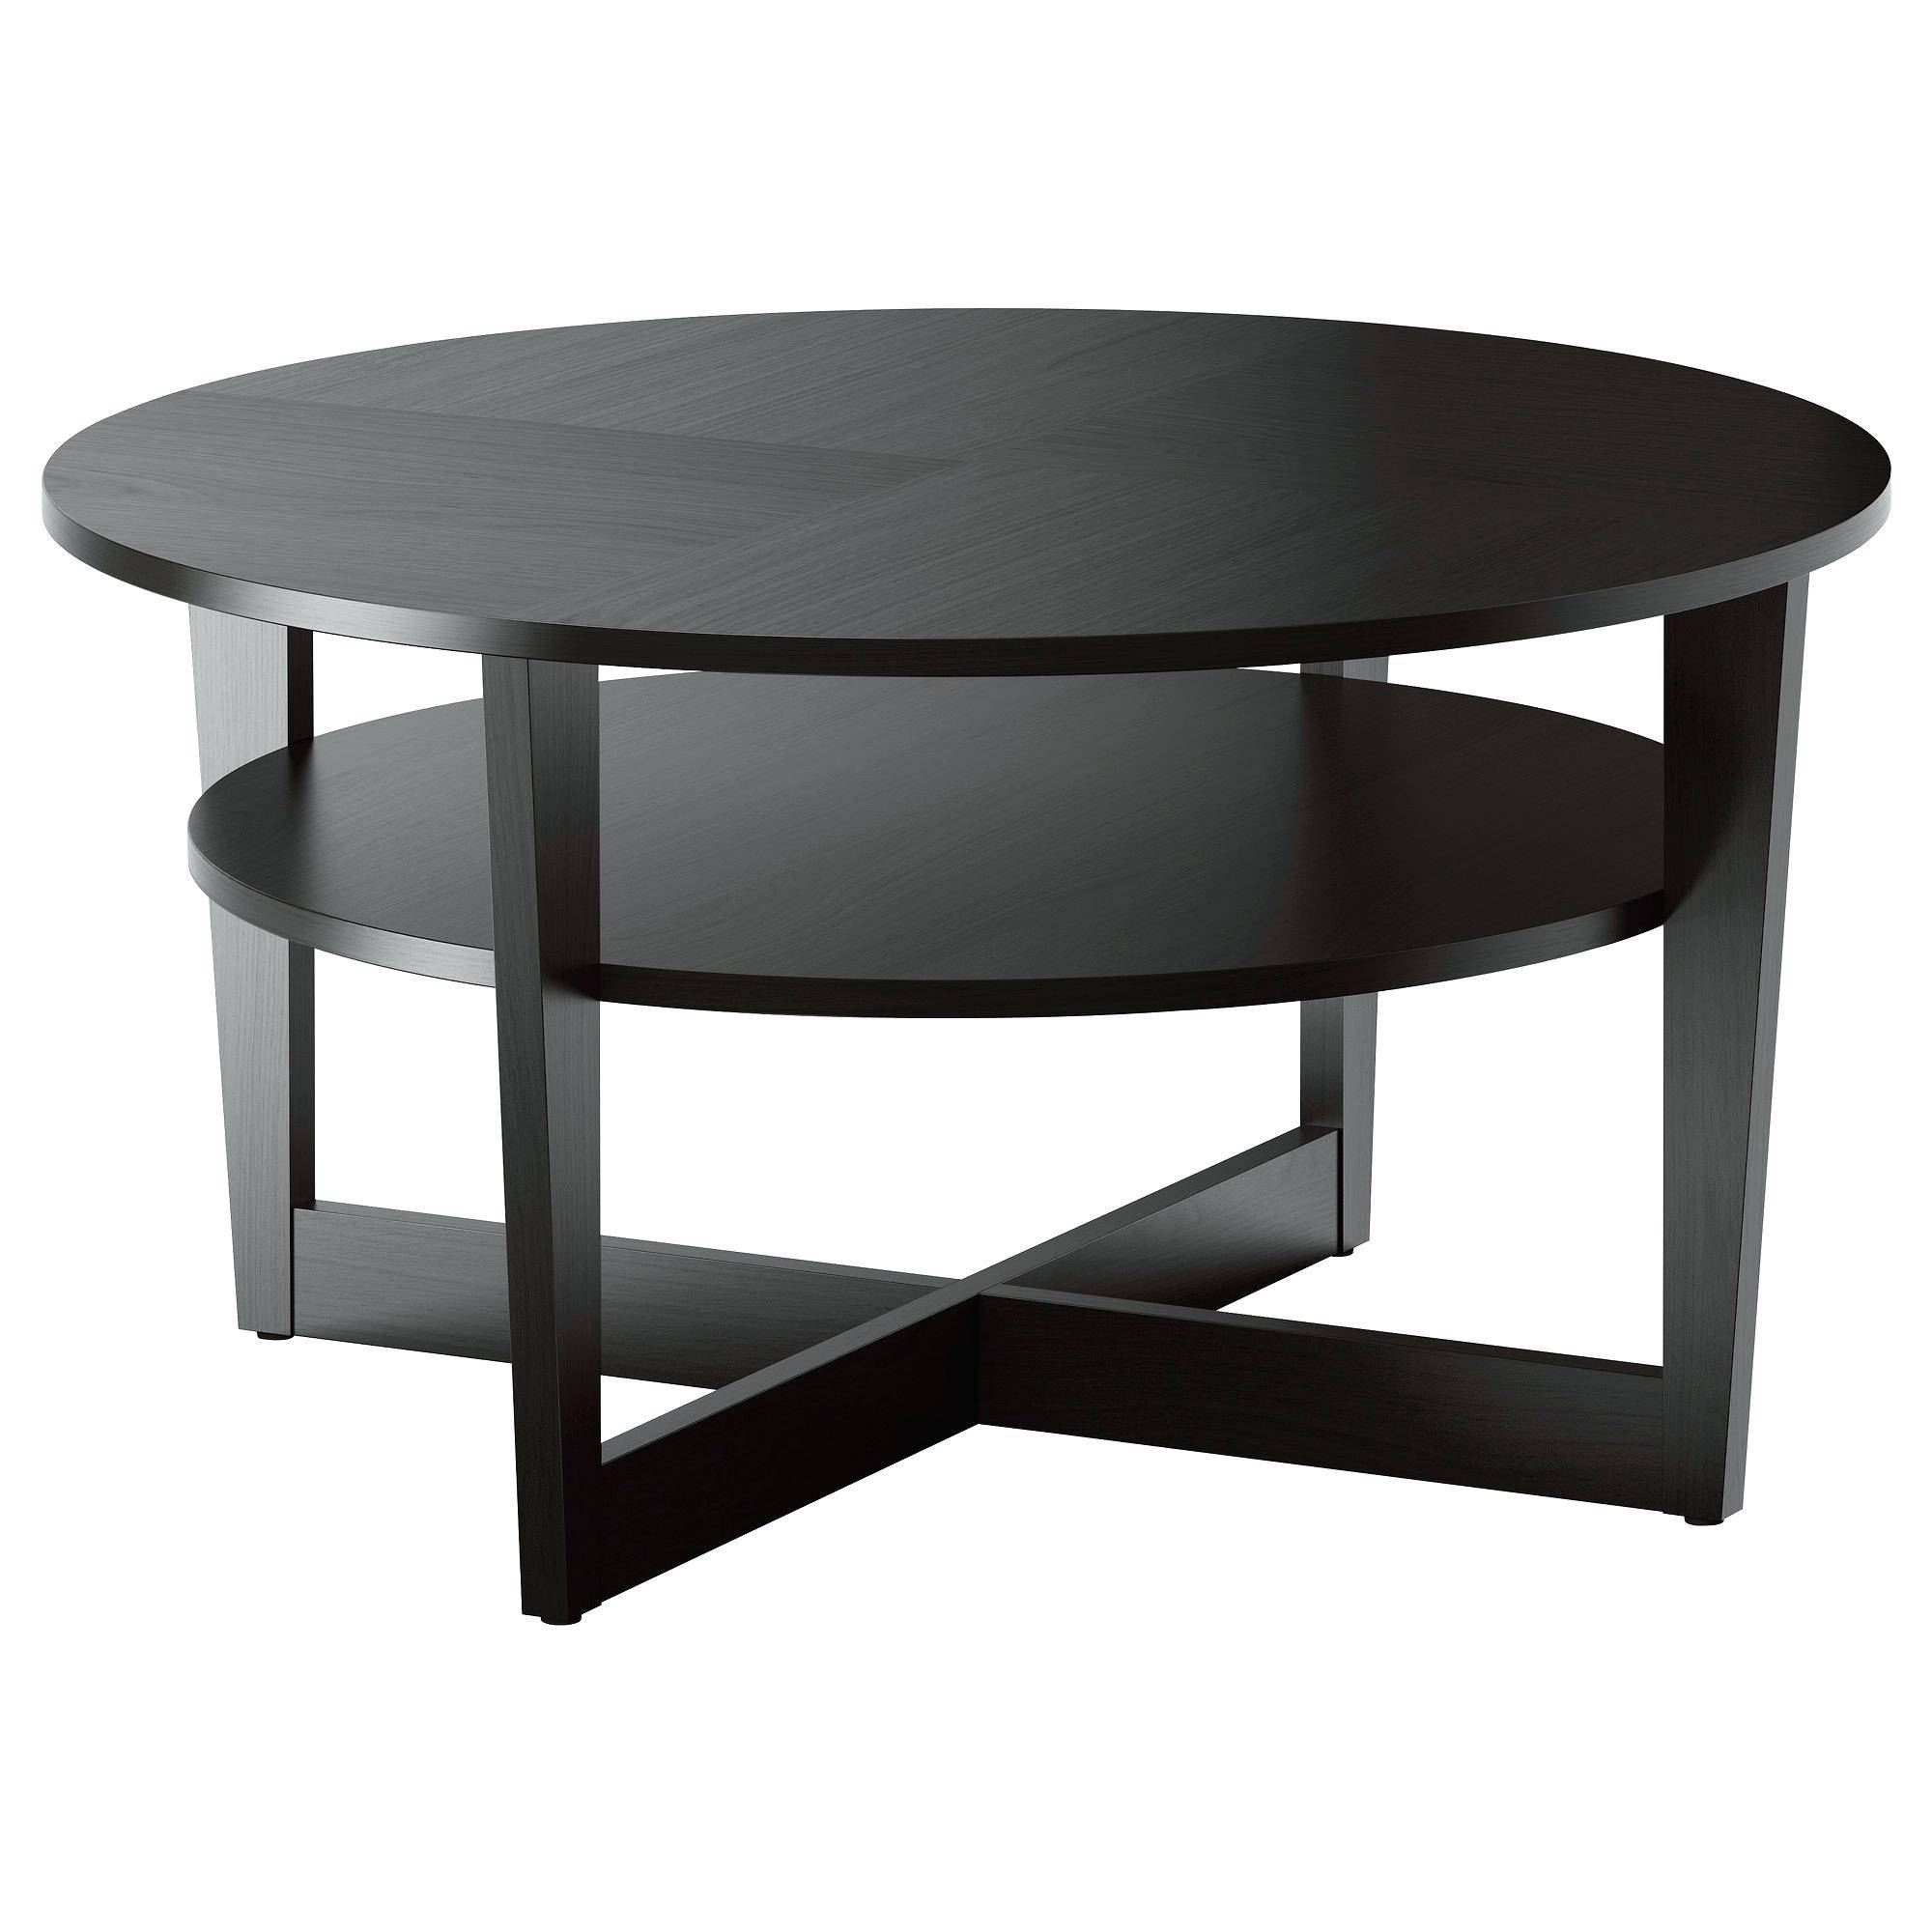 Coffee Table ~ Coffee Tables Round And Walnut Tableblack Couch Throughout Clock Coffee Tables Round Shaped (View 11 of 30)